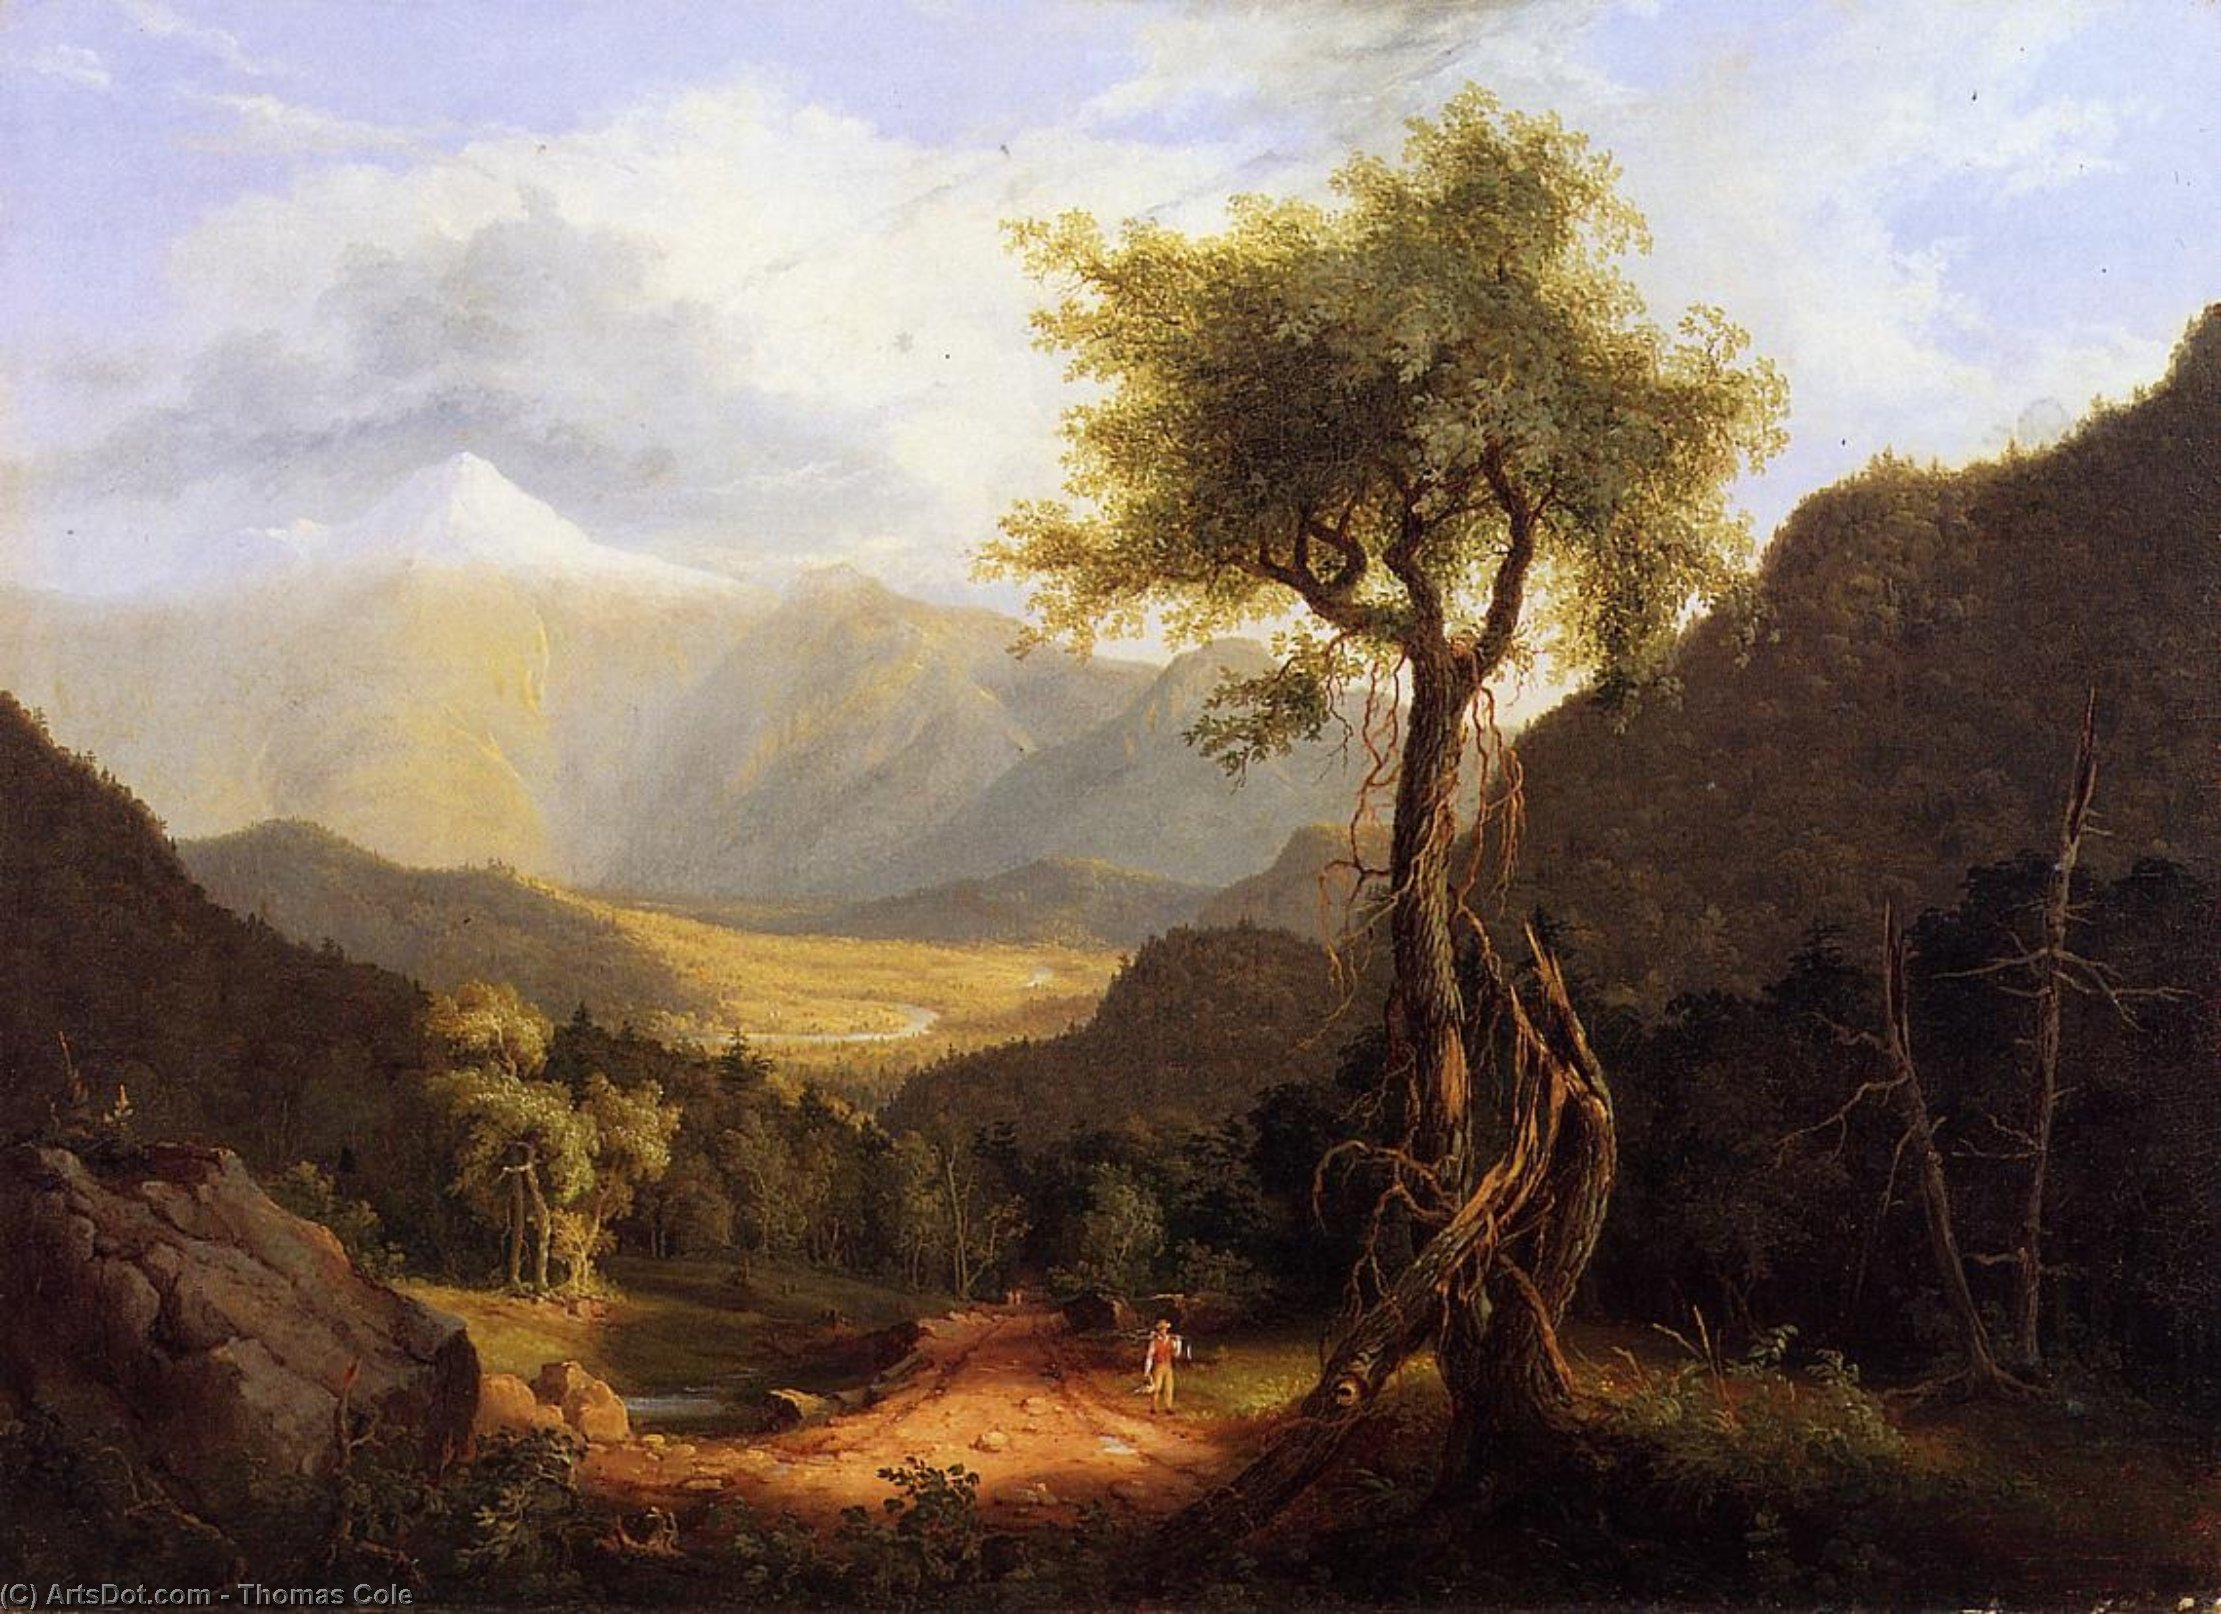 vista no branco montanhas i, Petróleo por Thomas Cole (1801-1848, United Kingdom)